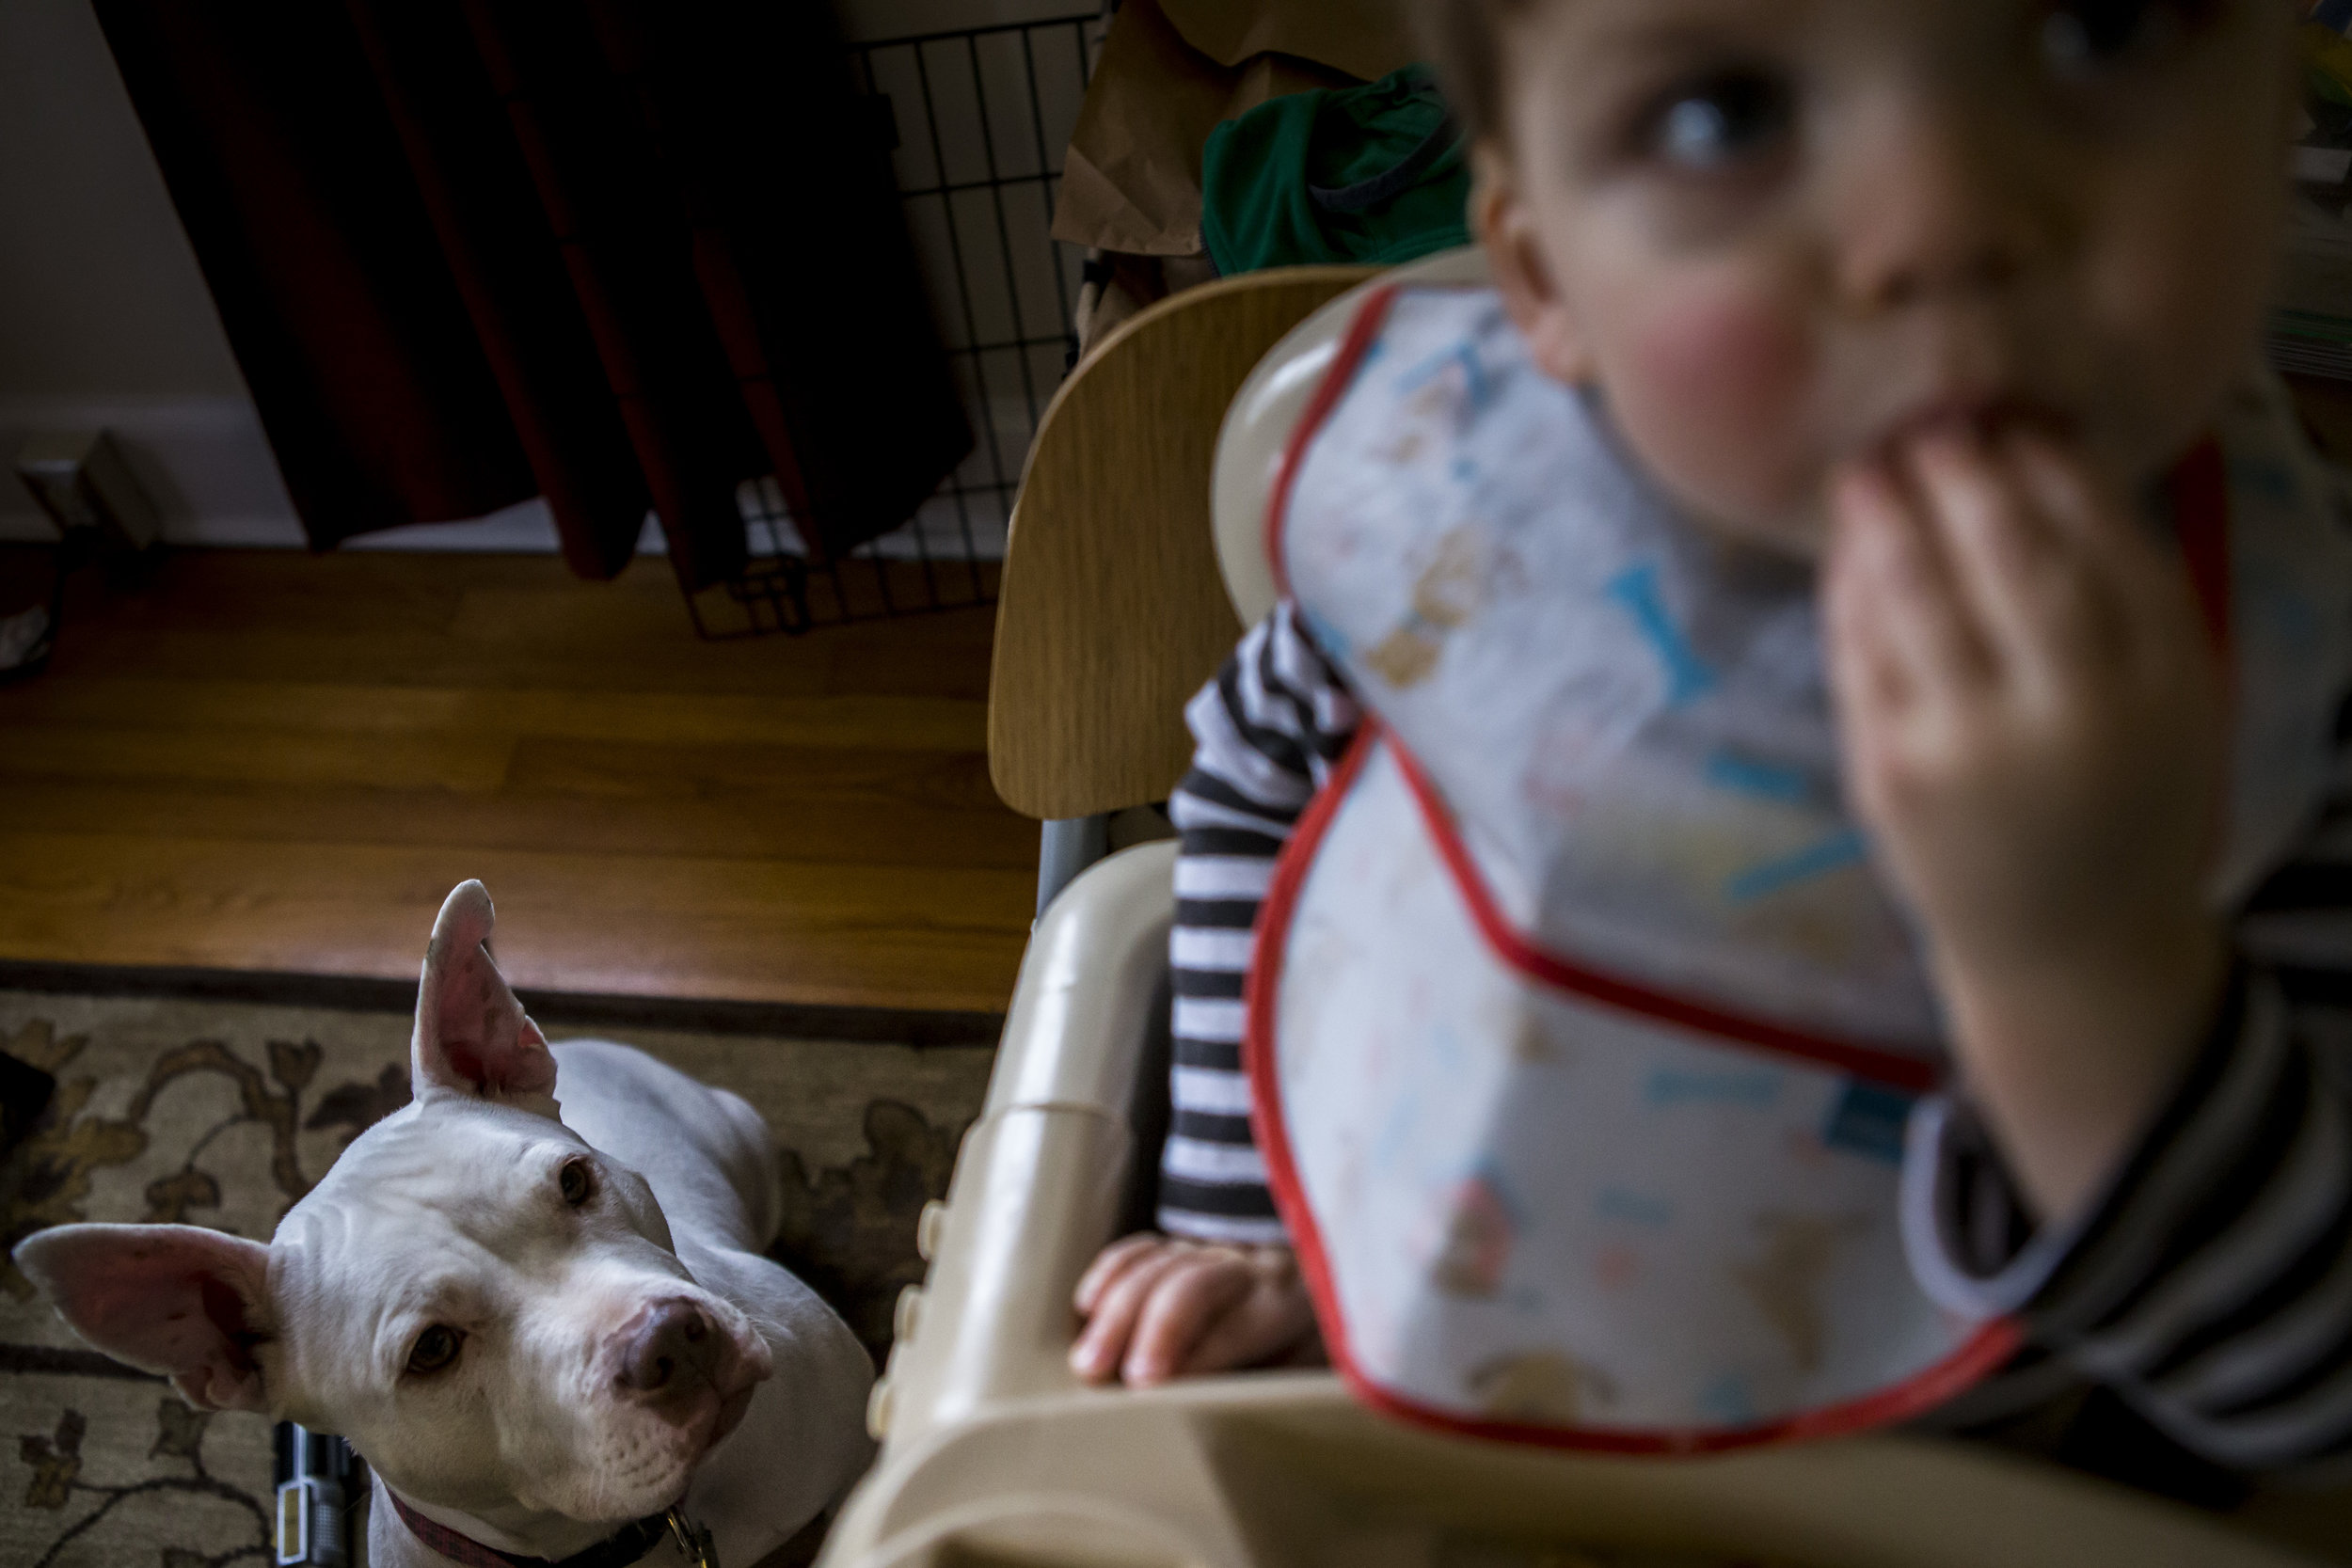 Authentic candid family photography in CT featuring pit bull dog watching toddler eat in high chair.